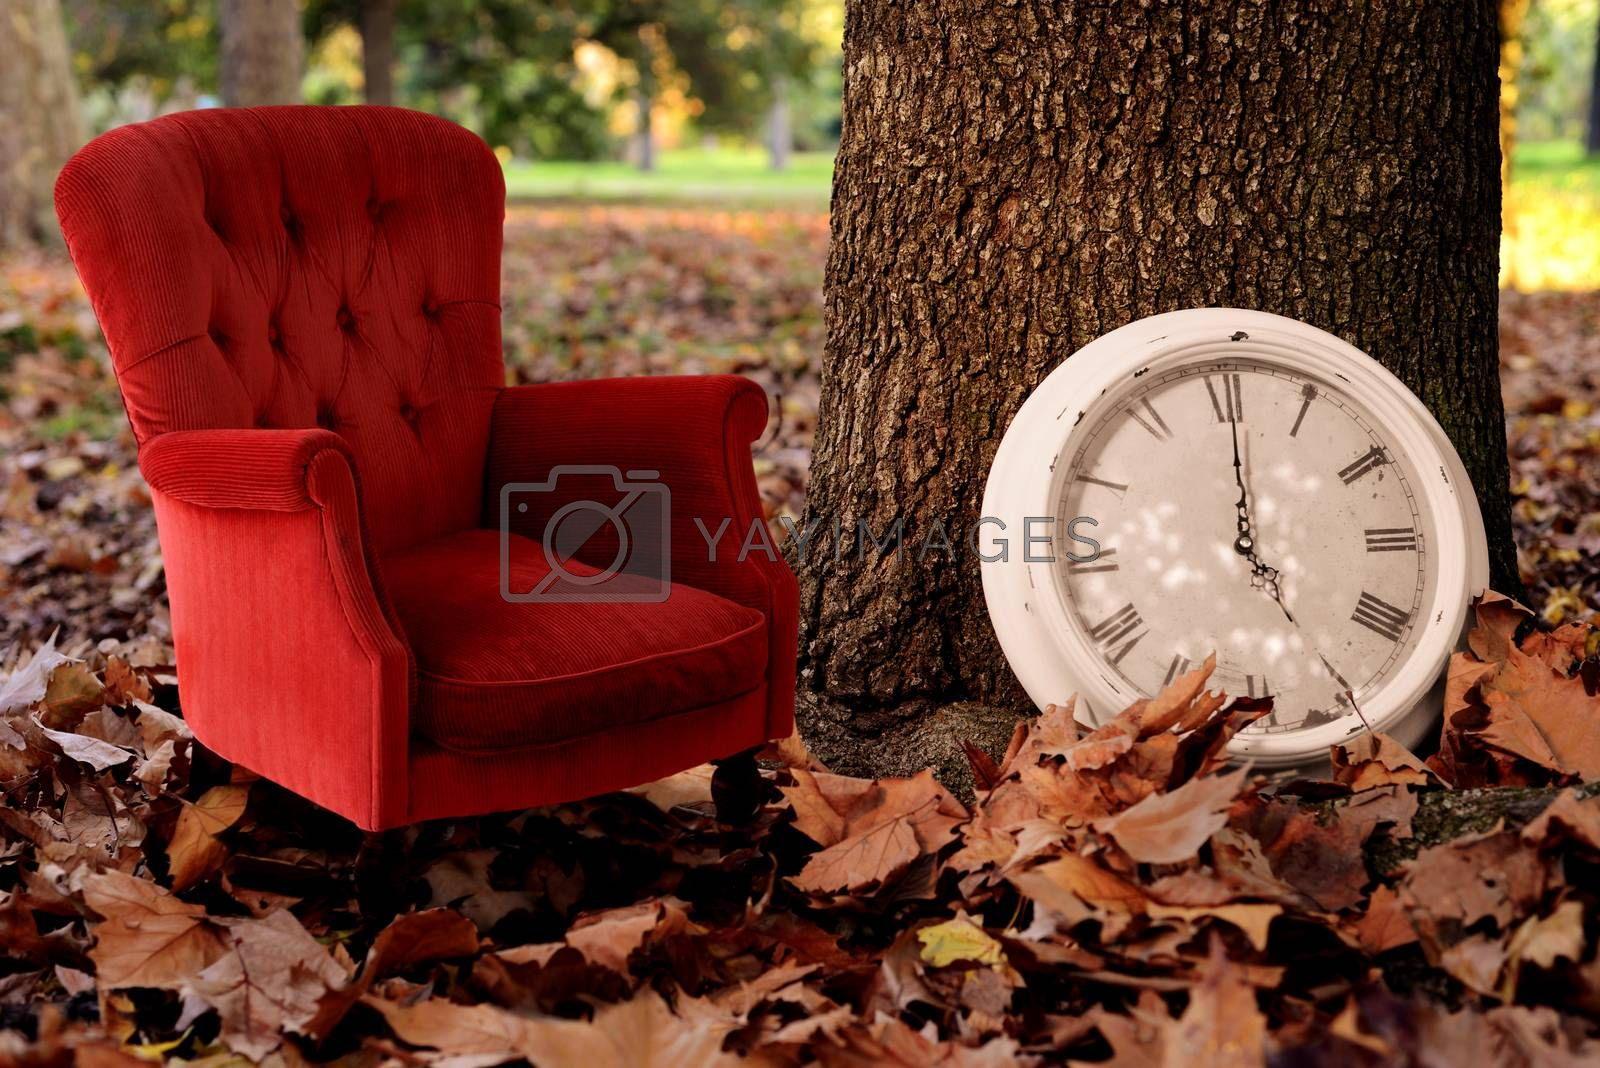 Relax is Fall time concept vintage background. Tell a autumn history creative idea photography with tree, clock and red sofa on season leaves park background.